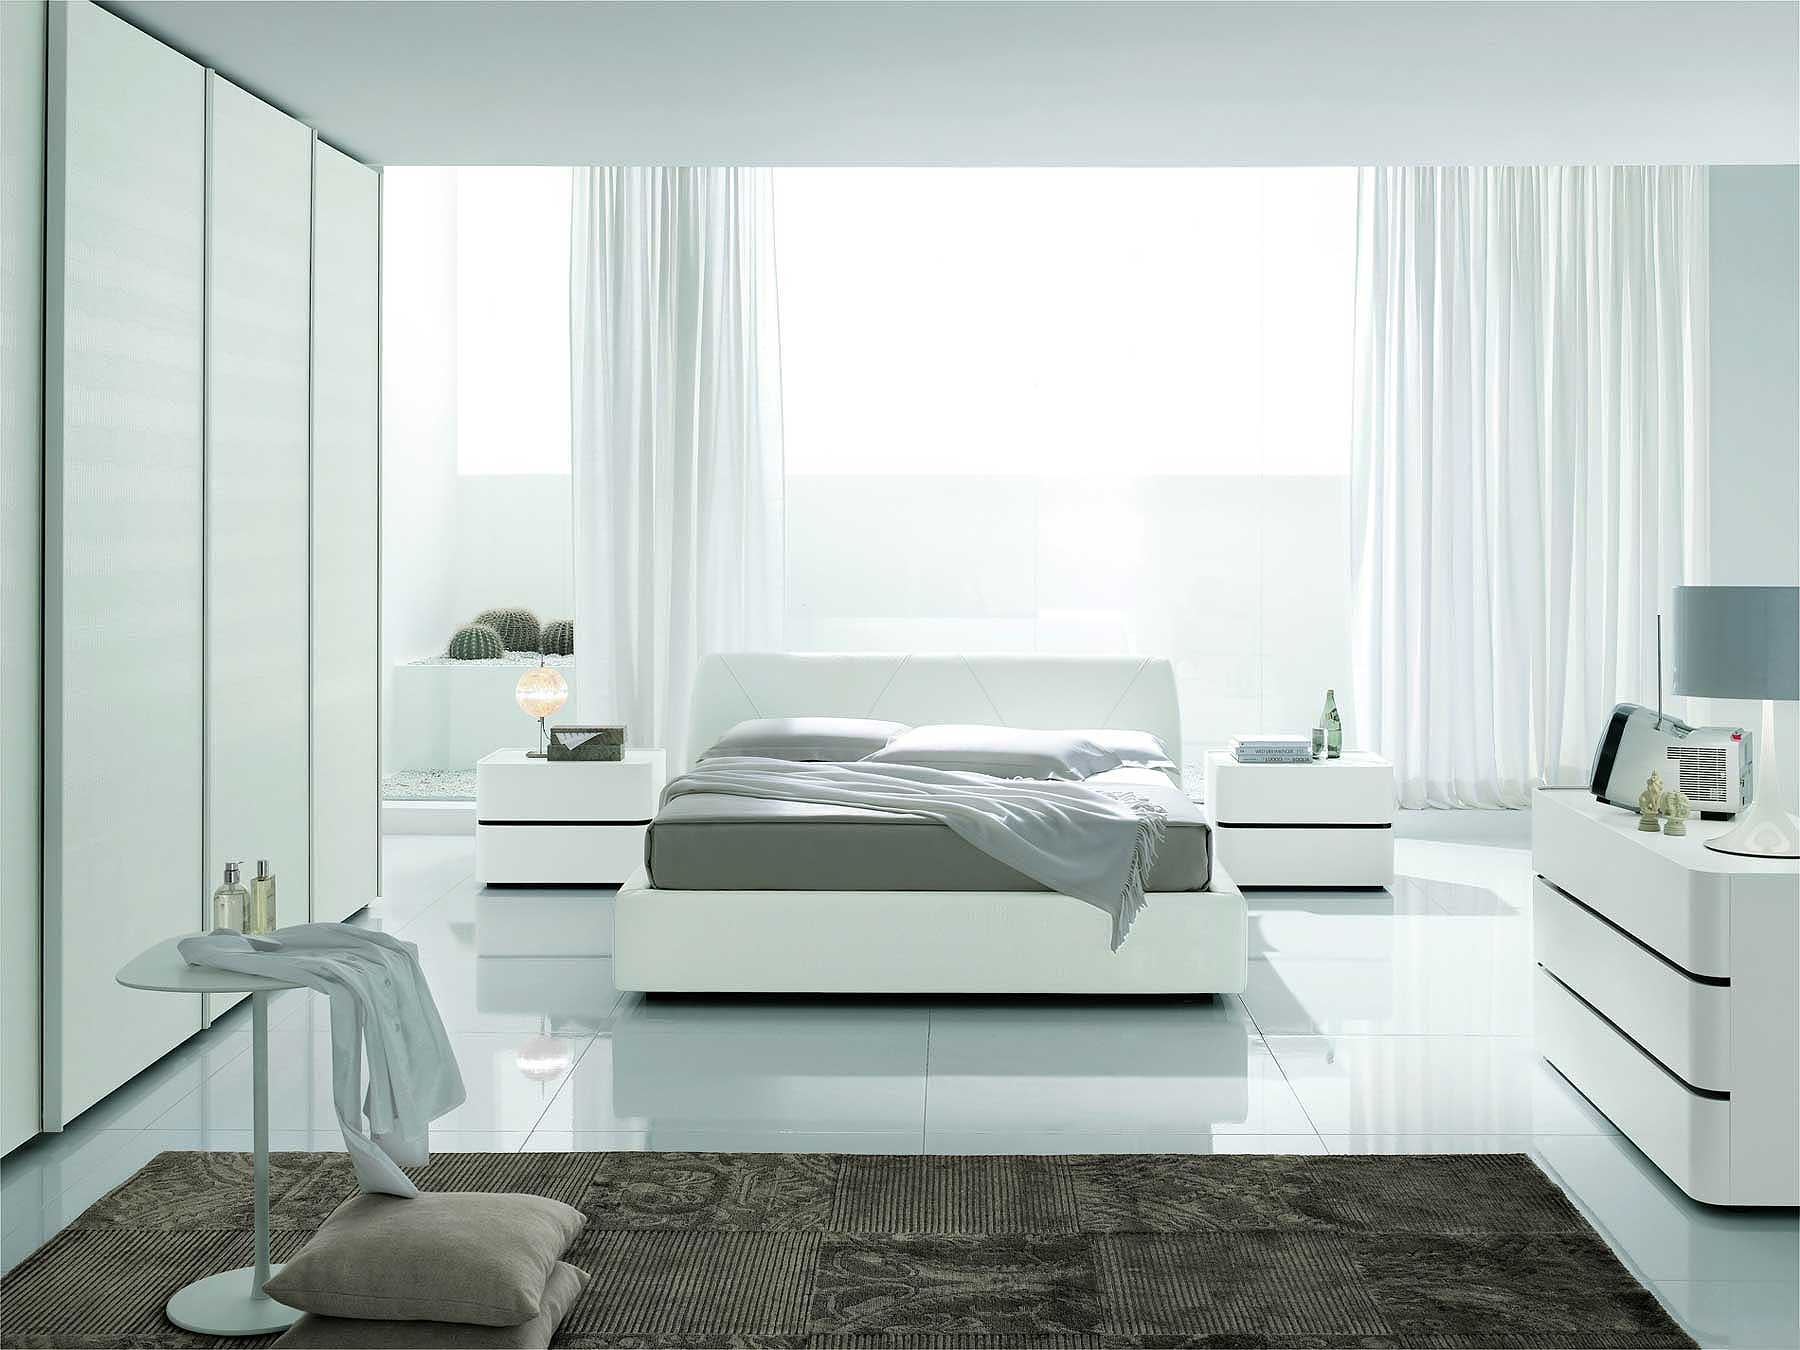 Modern White Bedroom Furniture The New Way Home Decor A Simple for Modern White Bedroom Ideas